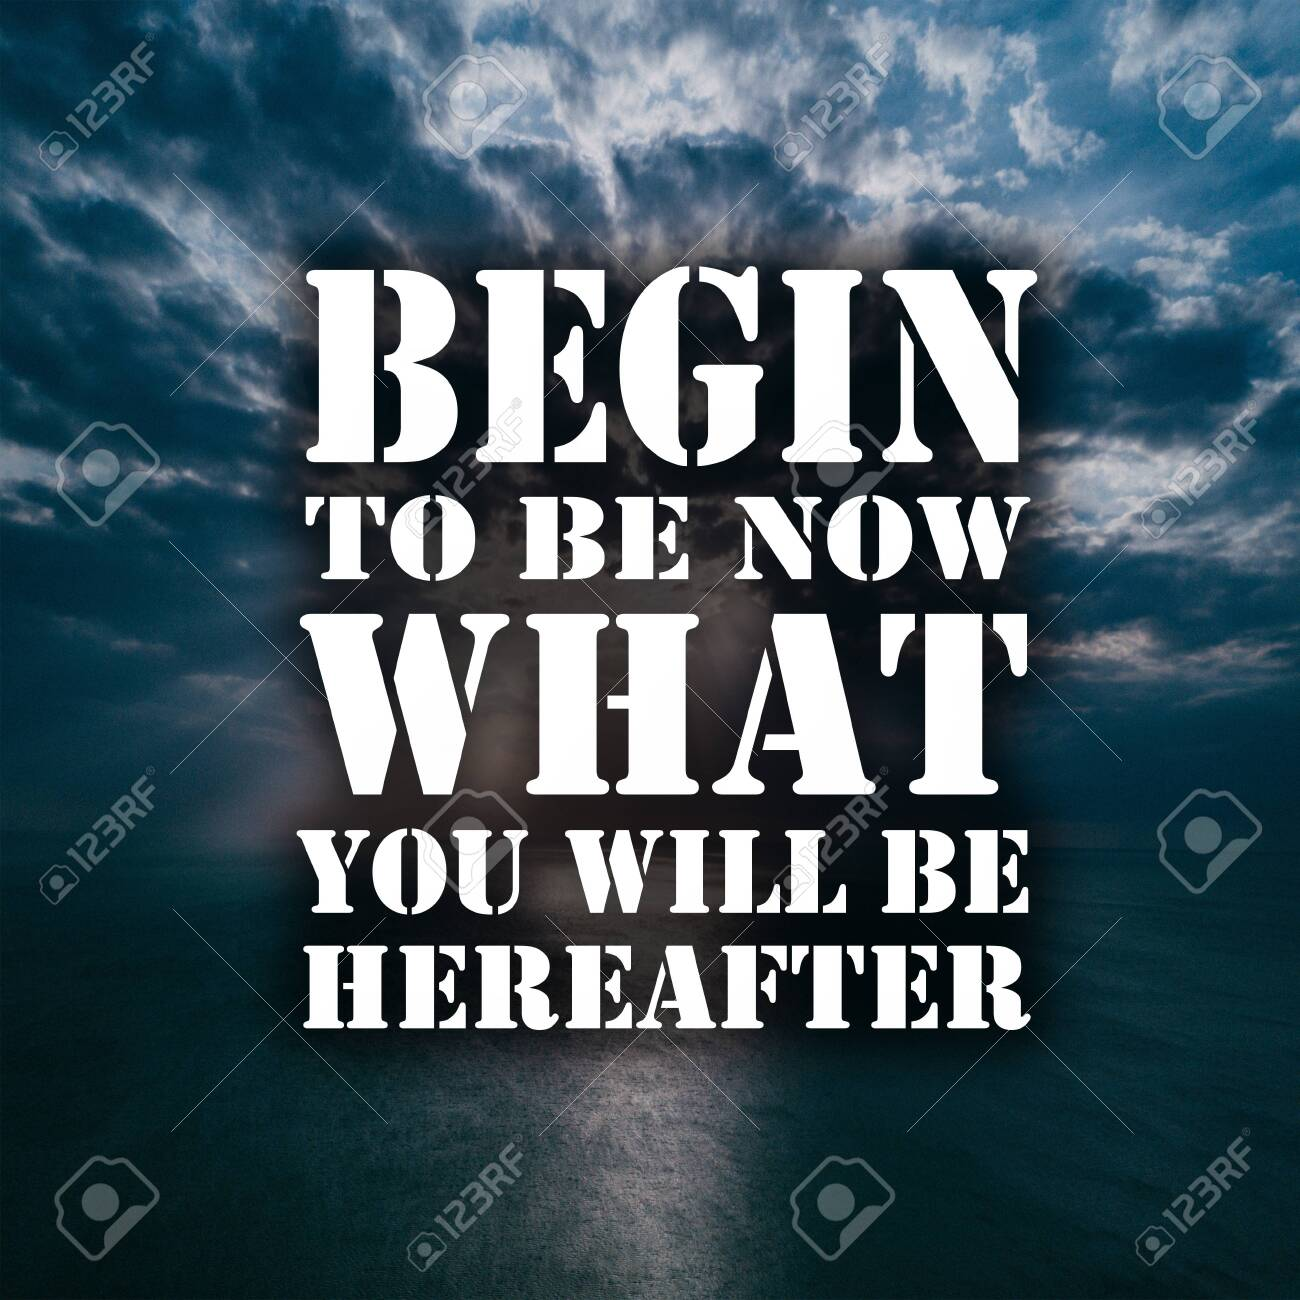 Inspirational Quotes Begin to be now what you will be hereafter,..